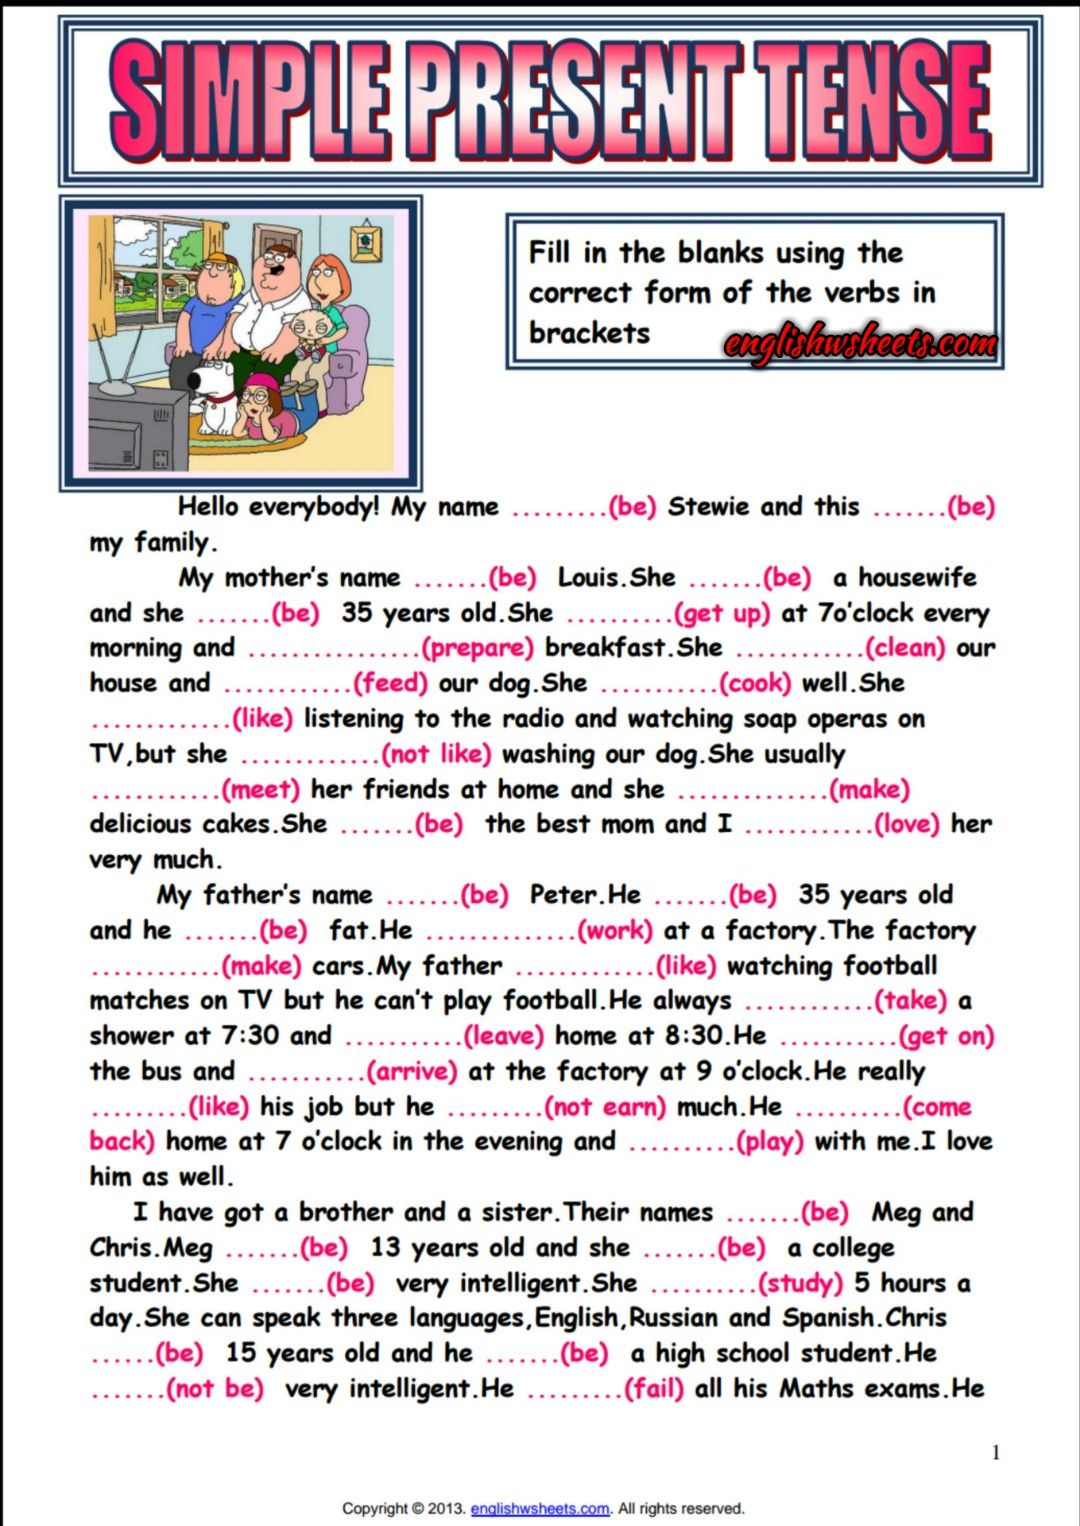 Simple Present Tense Reading Text Gap Filling Exercise